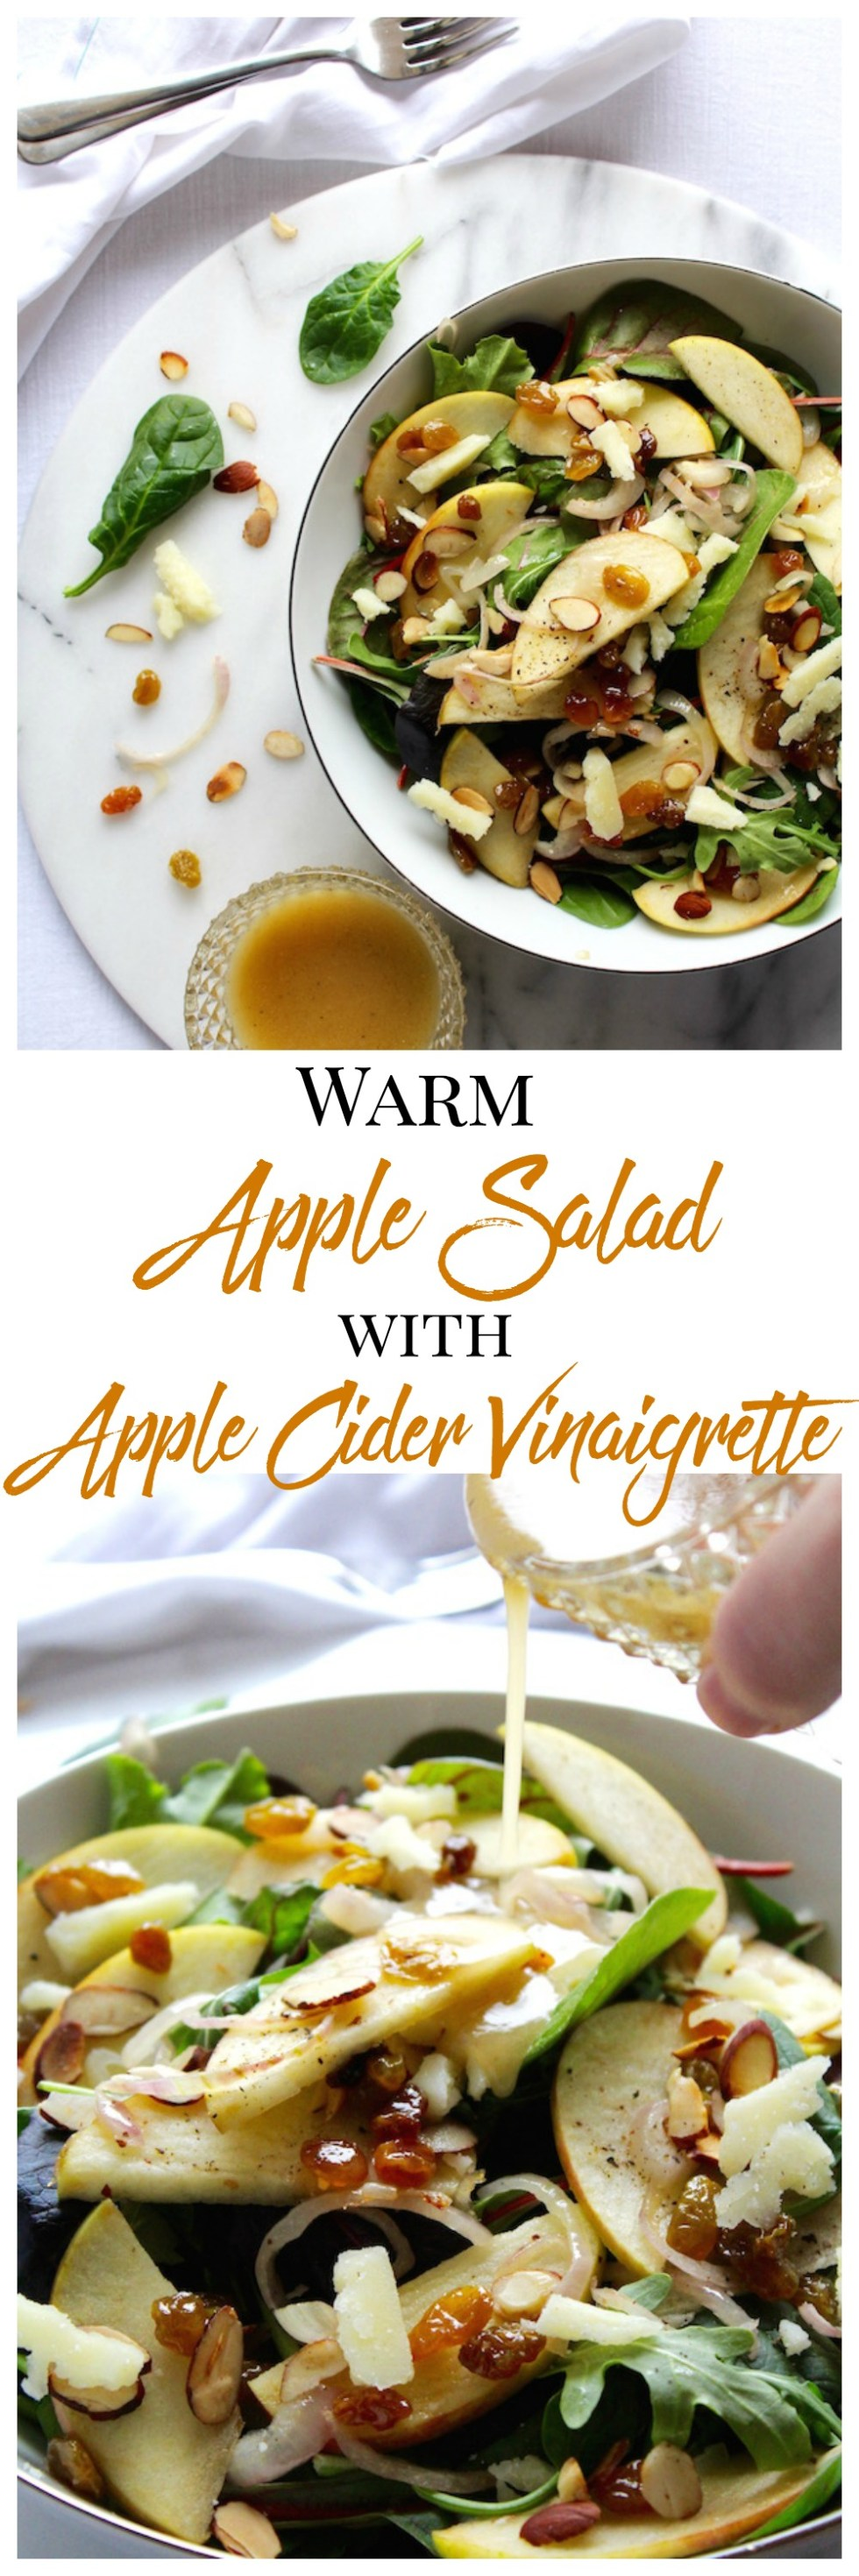 warm apple salad pinterest